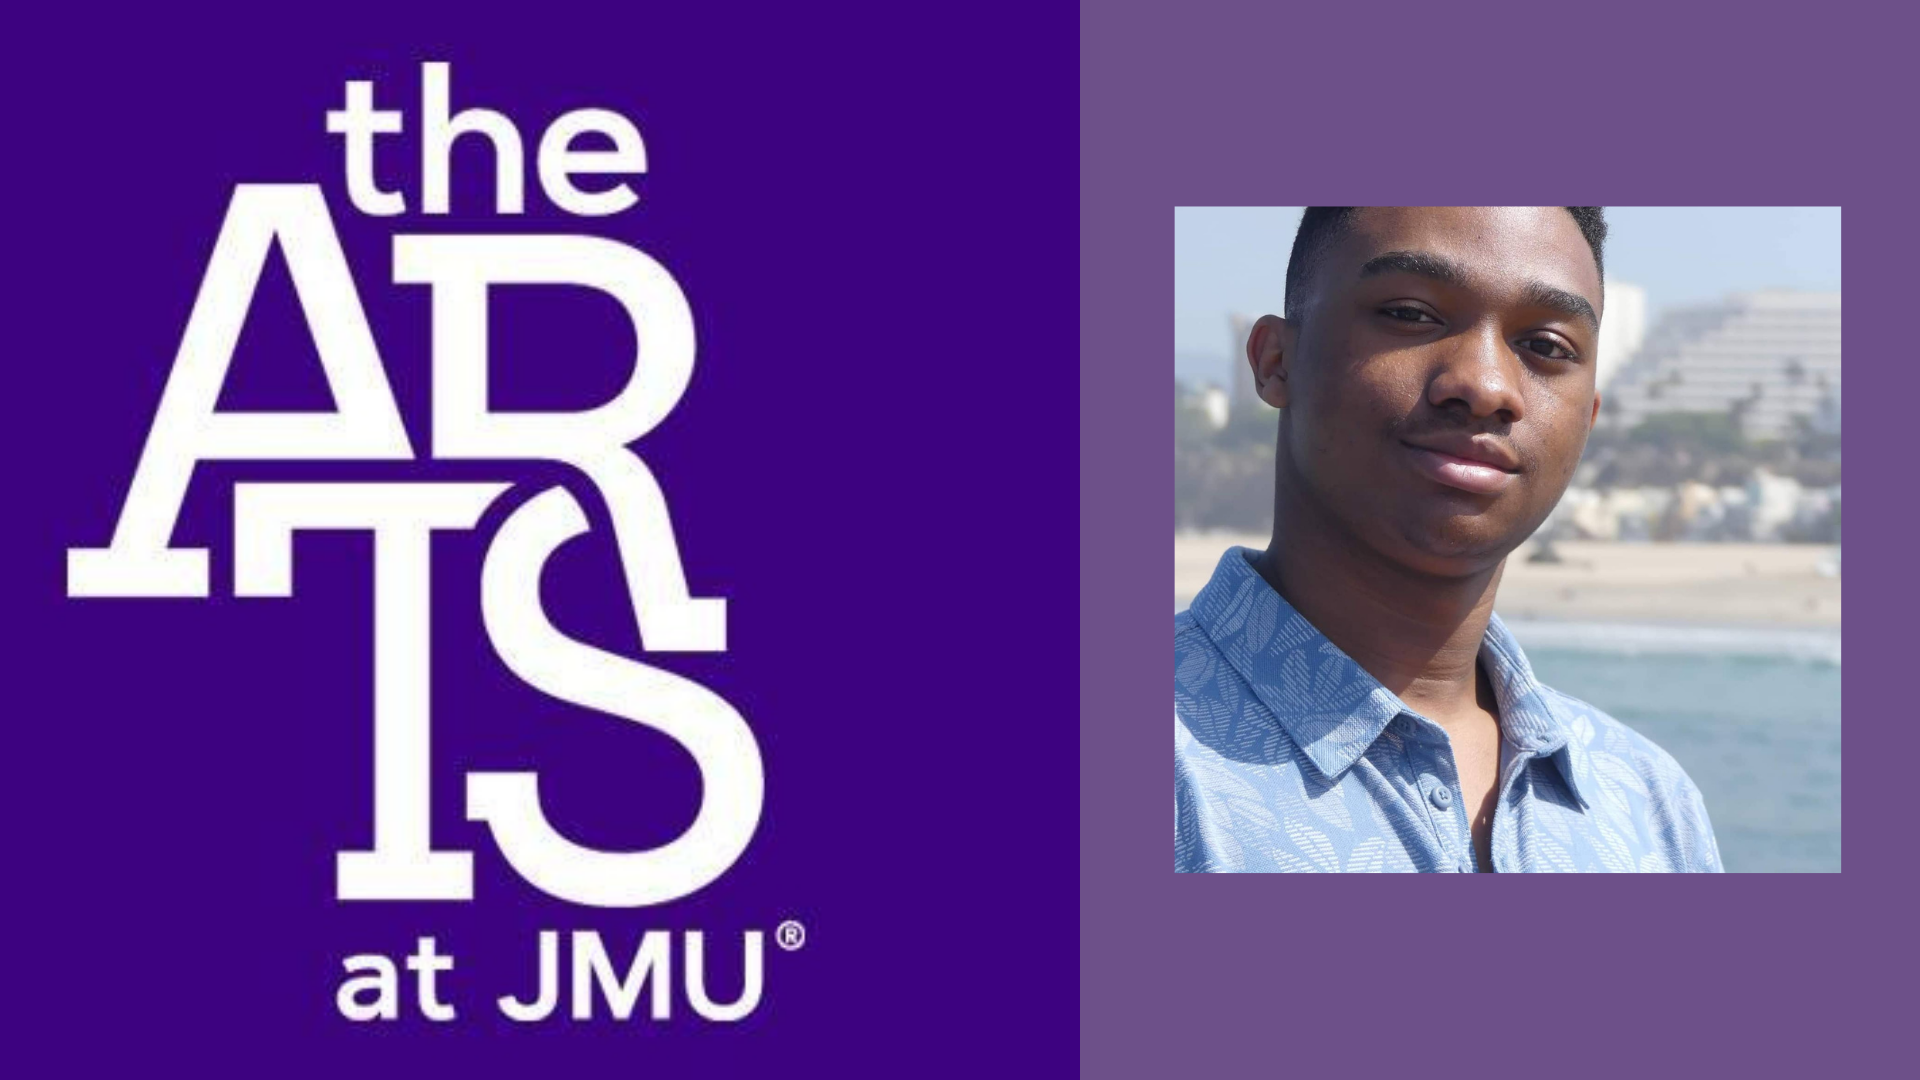 The logo of James Madison University is positioned next to the student who is speaking in the testimonial.